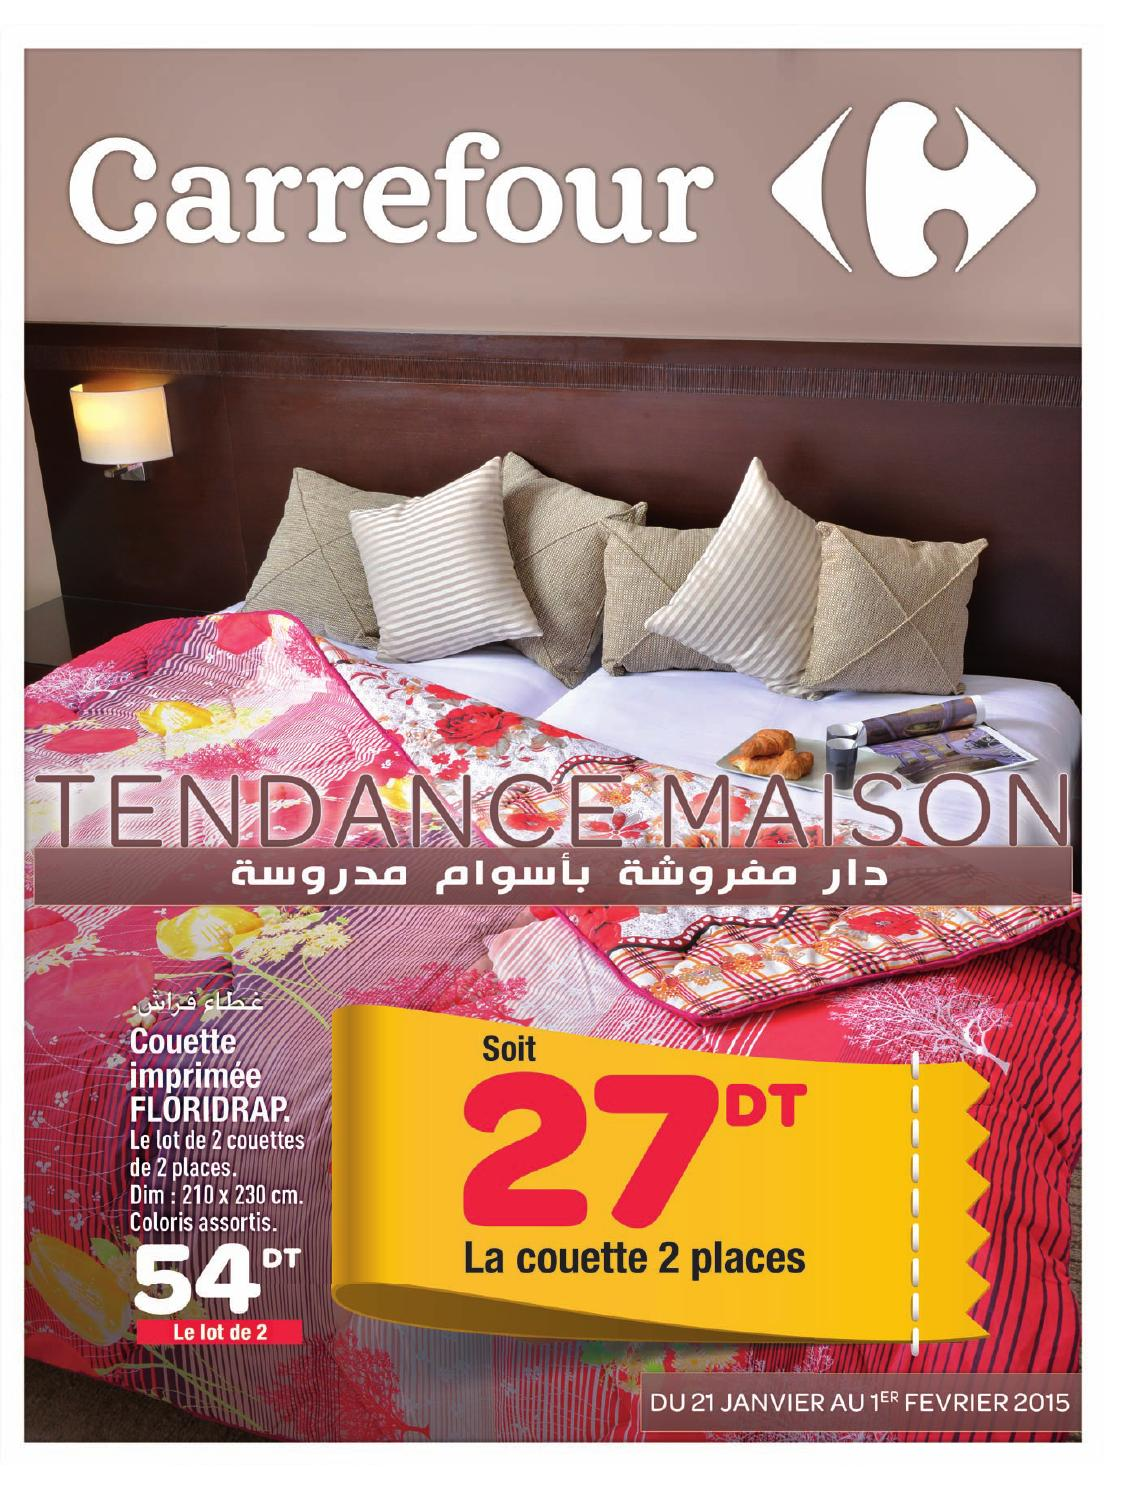 catalogue carrefour tendance maison by carrefour tunisie issuu. Black Bedroom Furniture Sets. Home Design Ideas